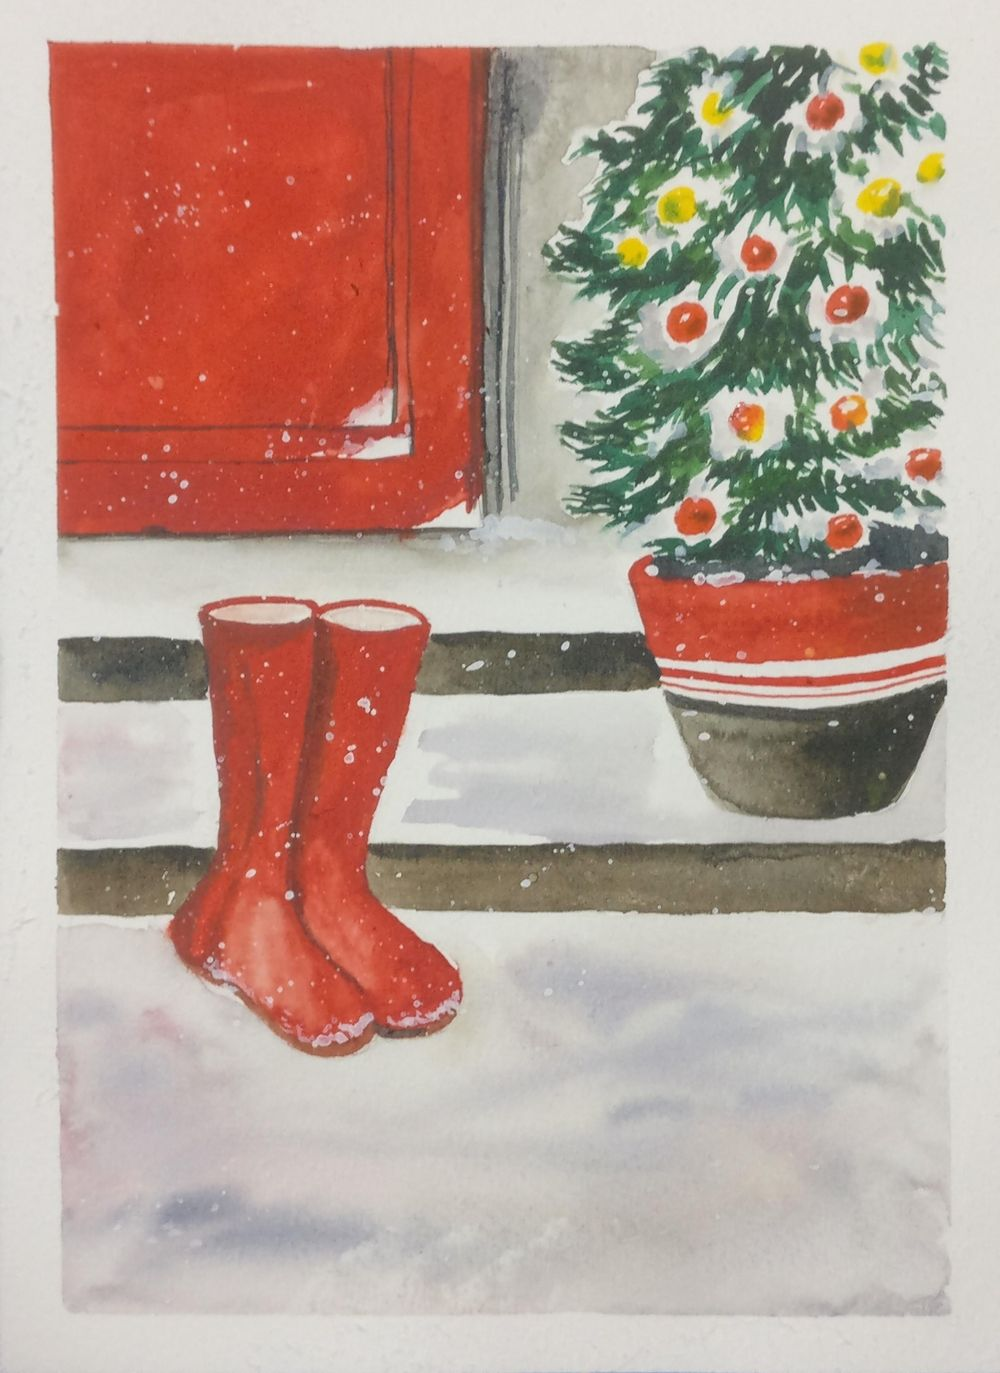 Christmas with watercolors - image 5 - student project